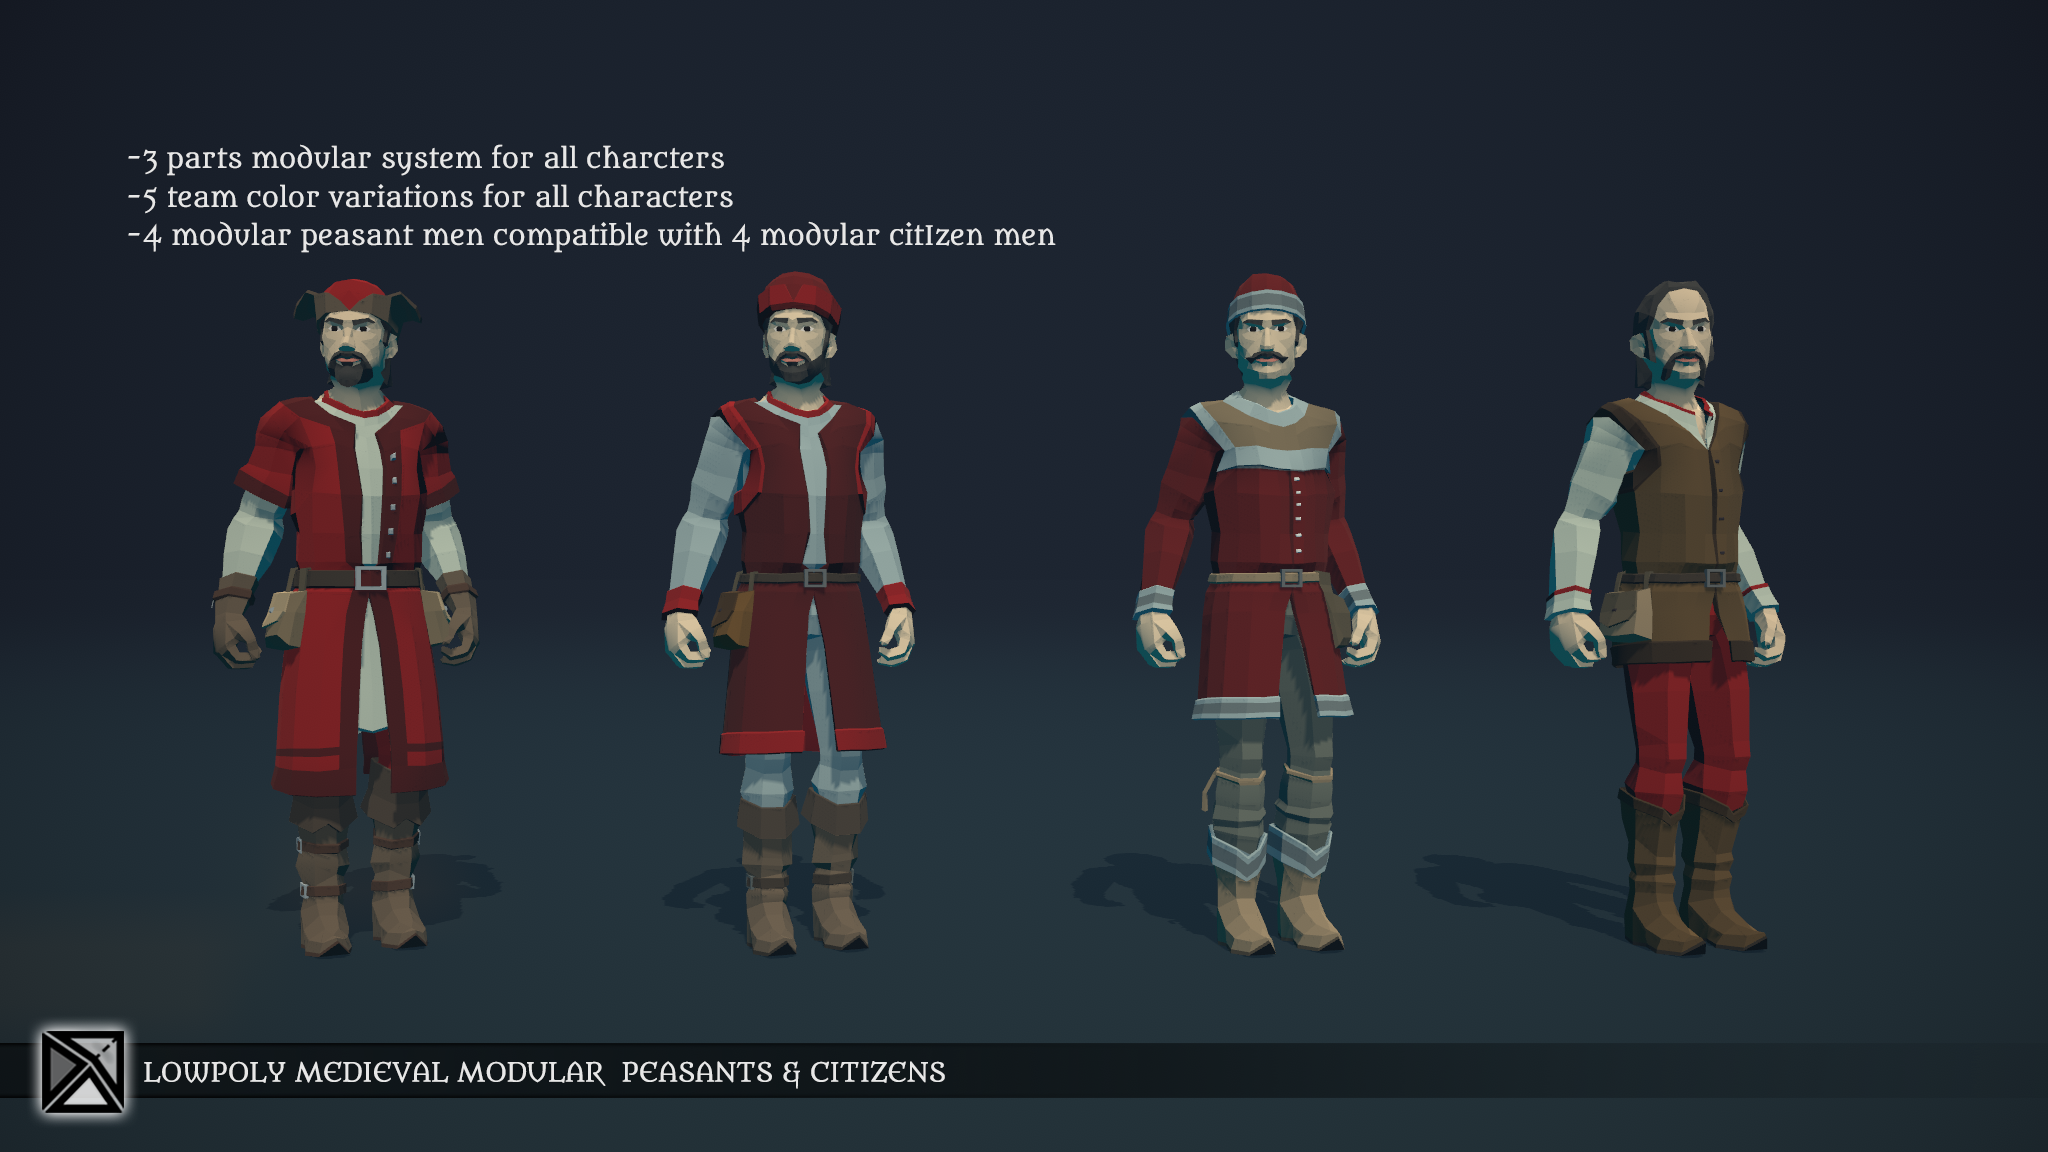 PT_Medieval_Lowpoly_Peasants_Citizens_Modular_Men_10.png